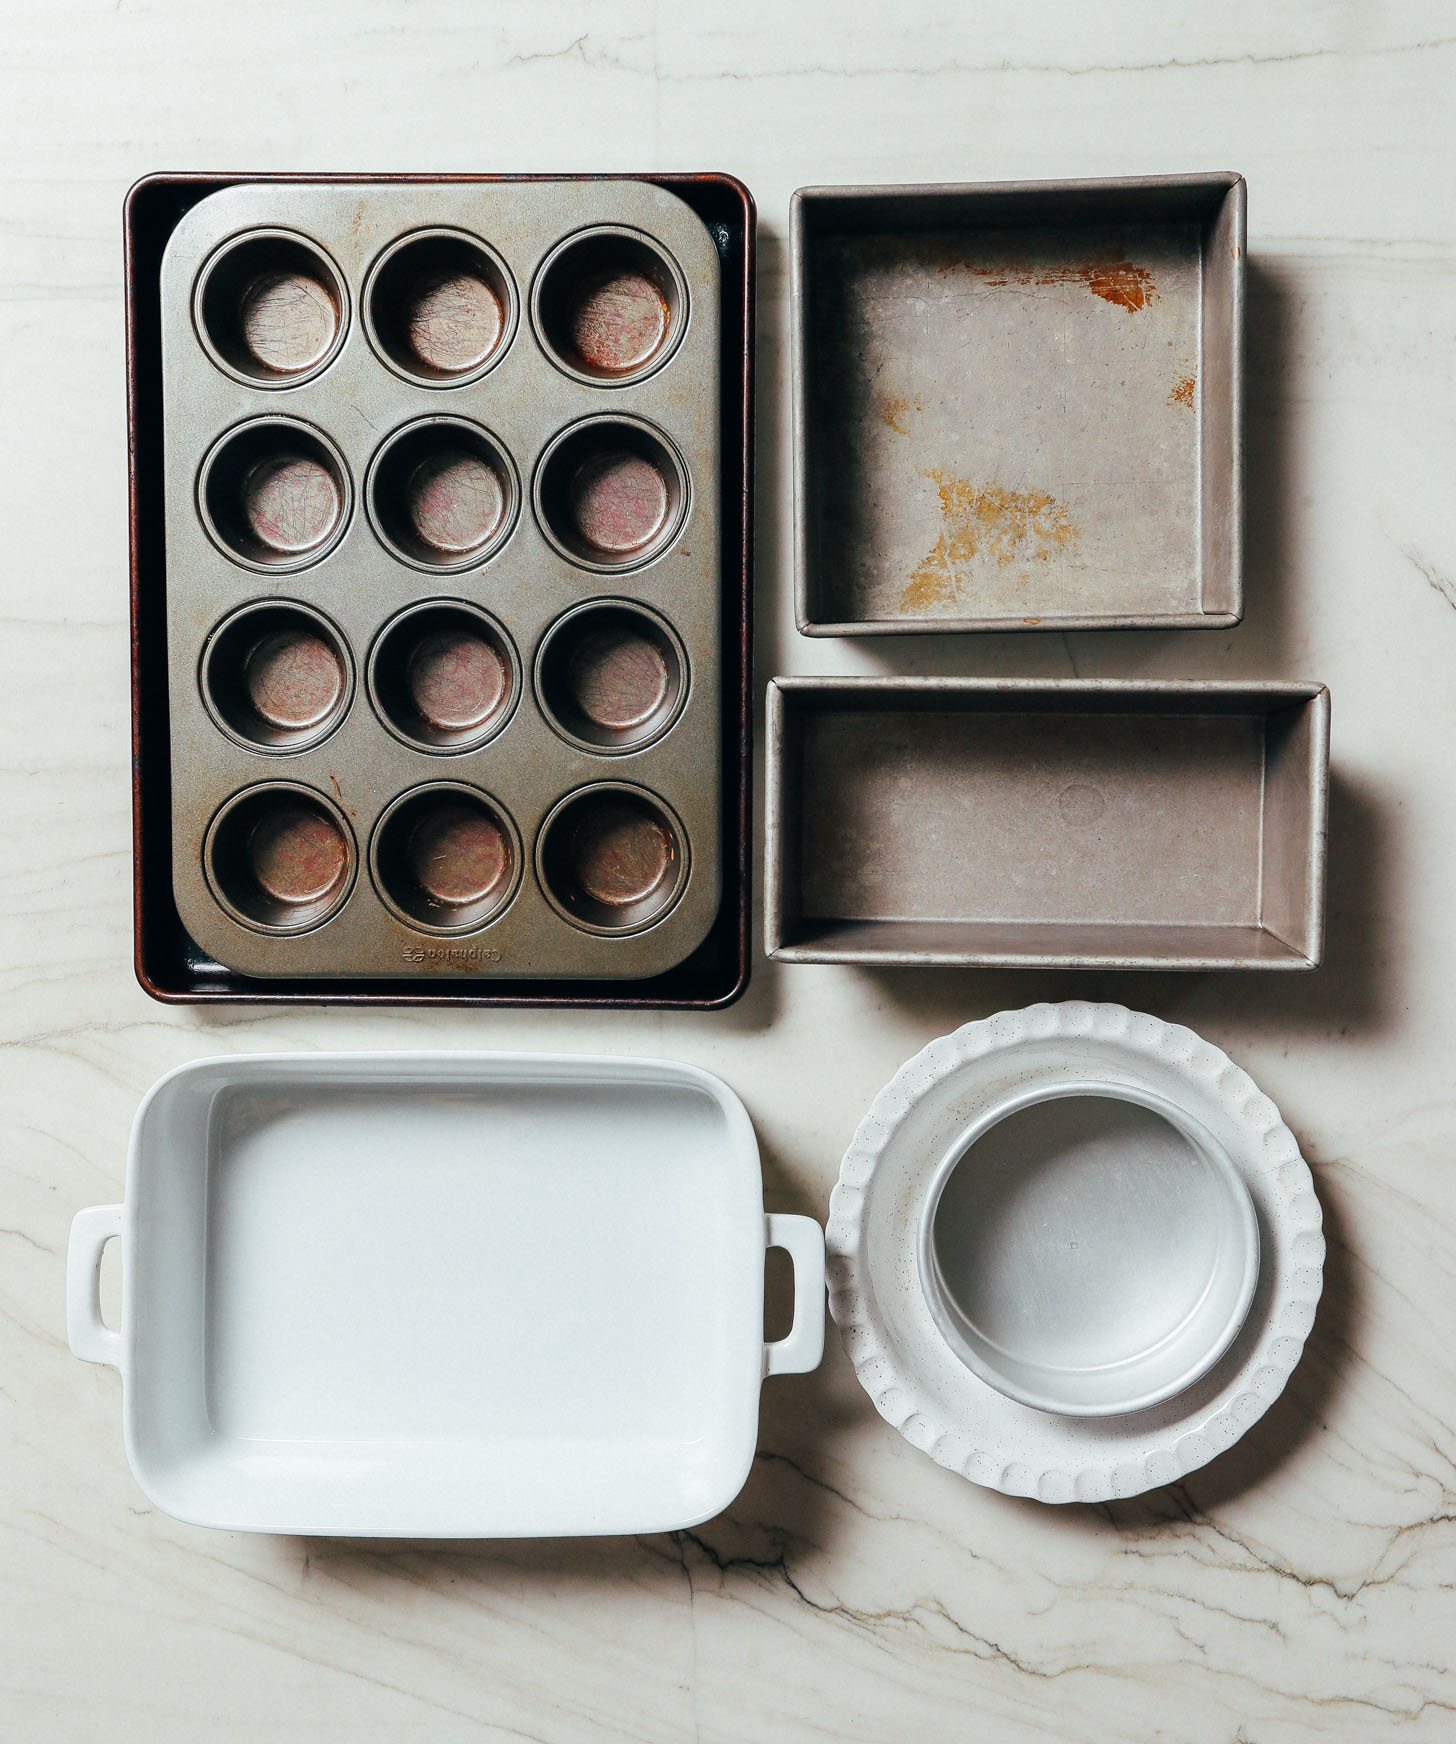 Assorted bakeware for all the tools needed to start baking in your kitchen